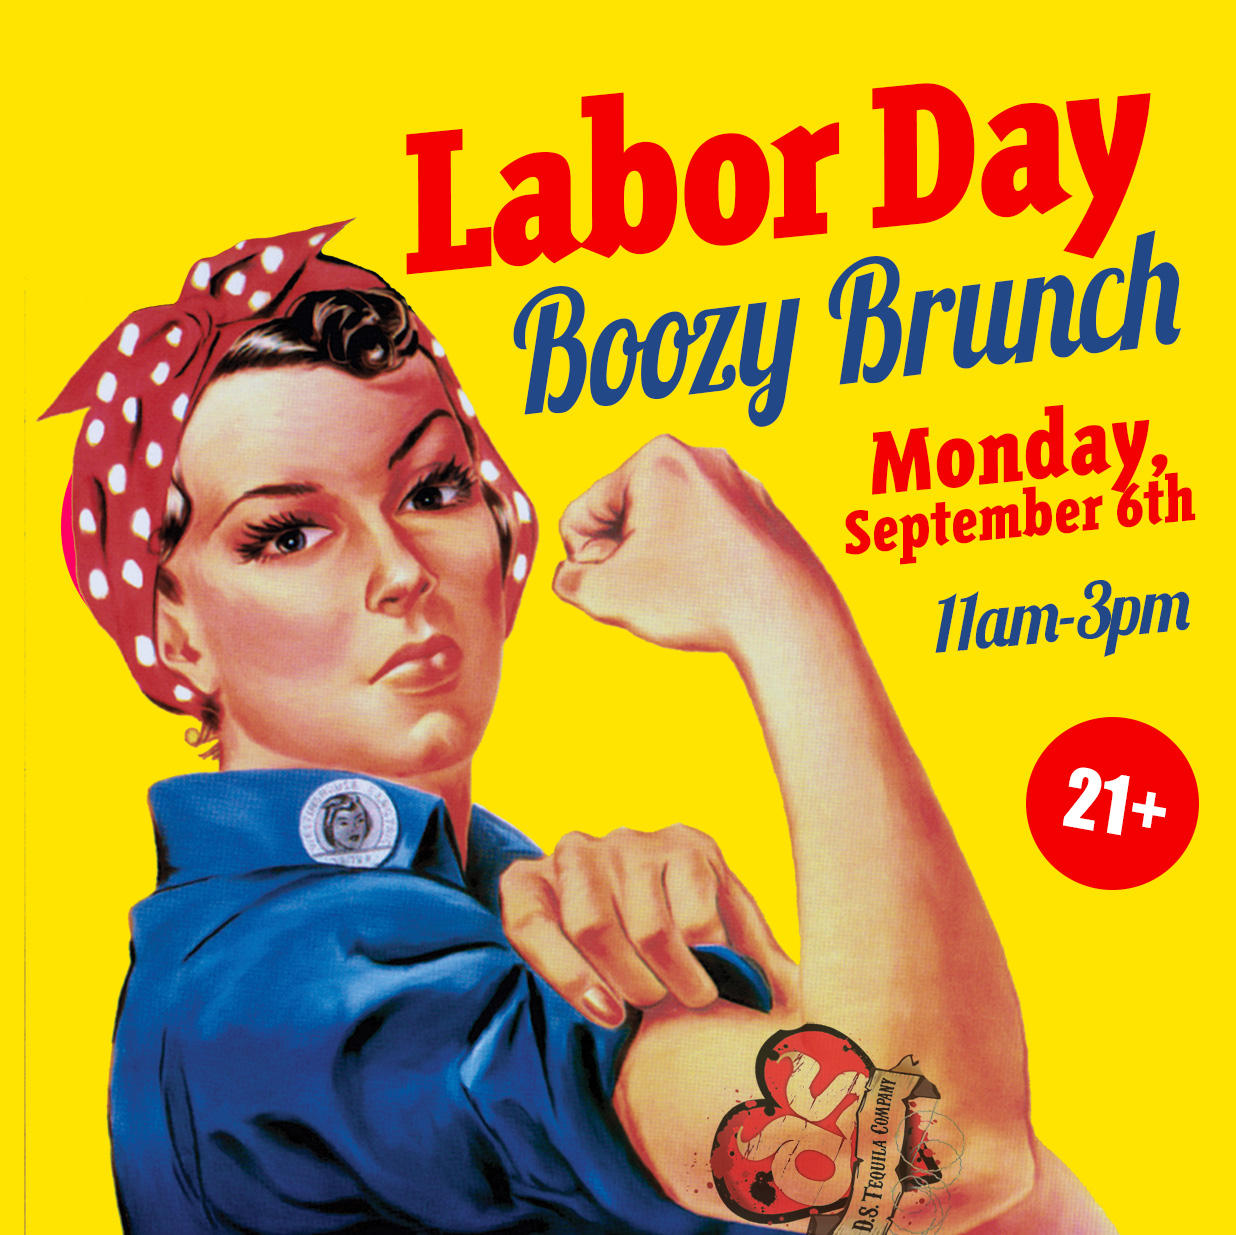 ds tequila labor day brunch chicago northalsted 2021